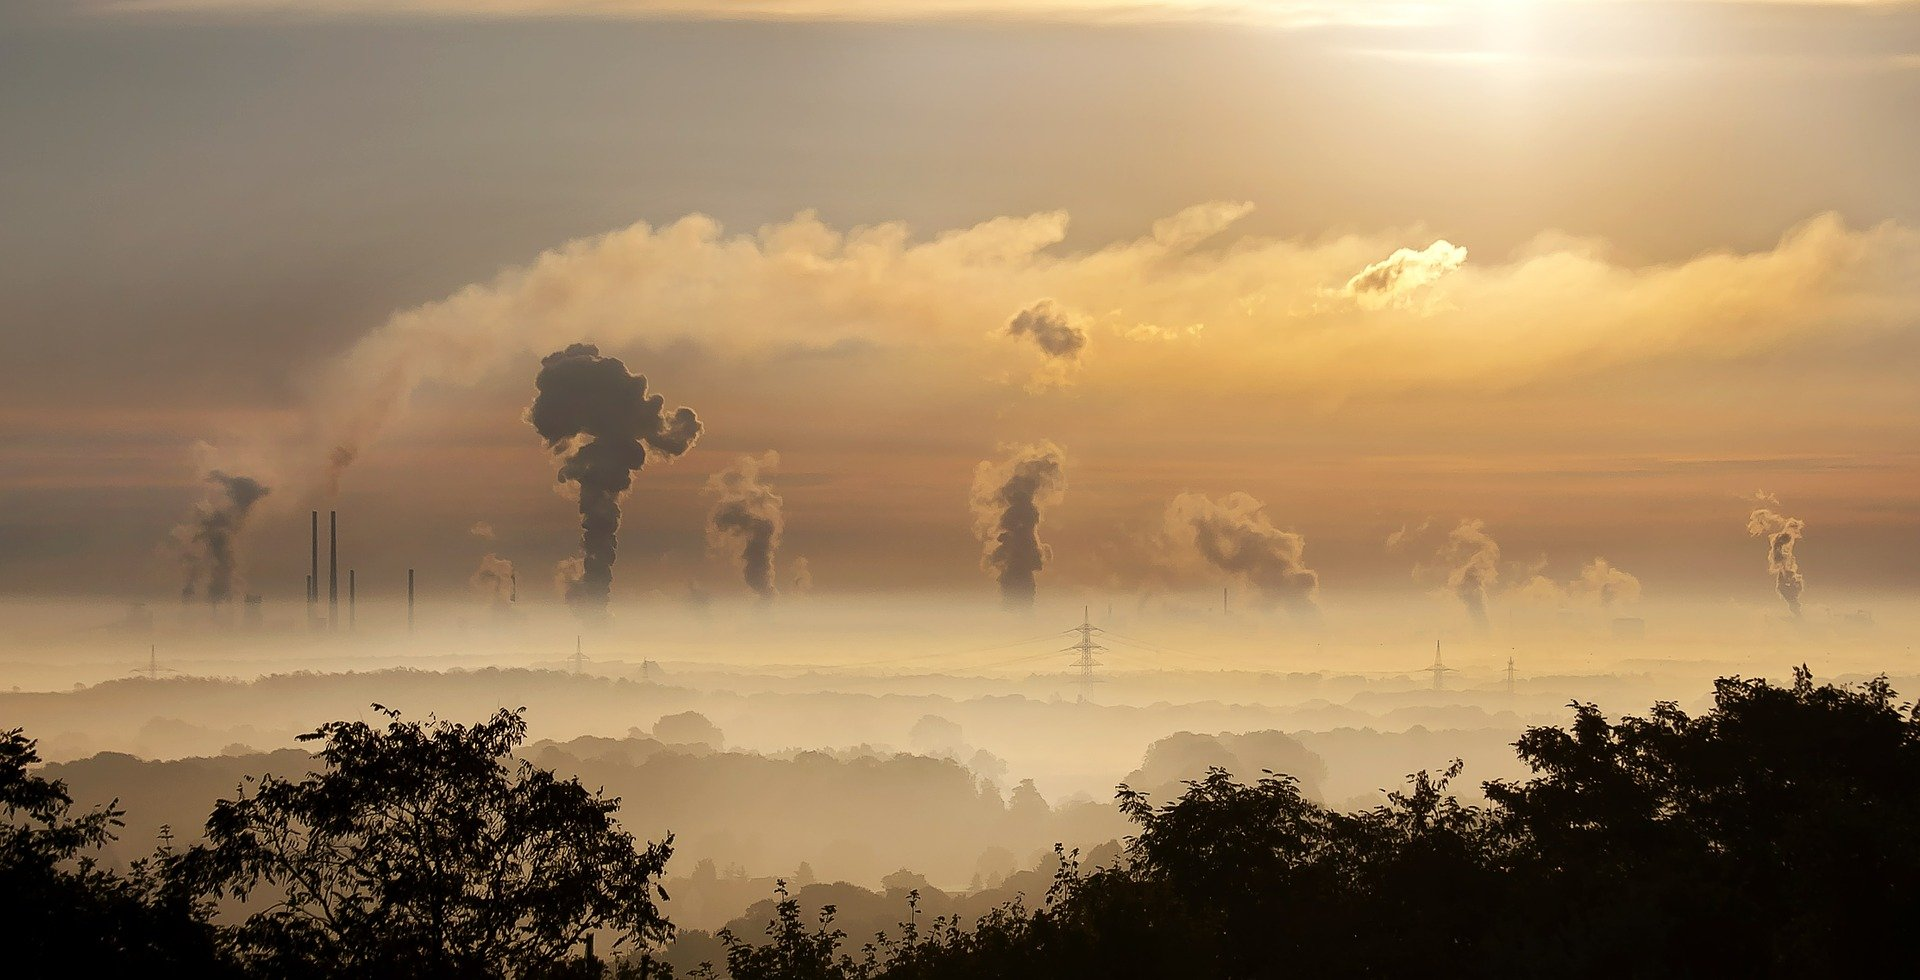 Smoke from industrial action in the environment